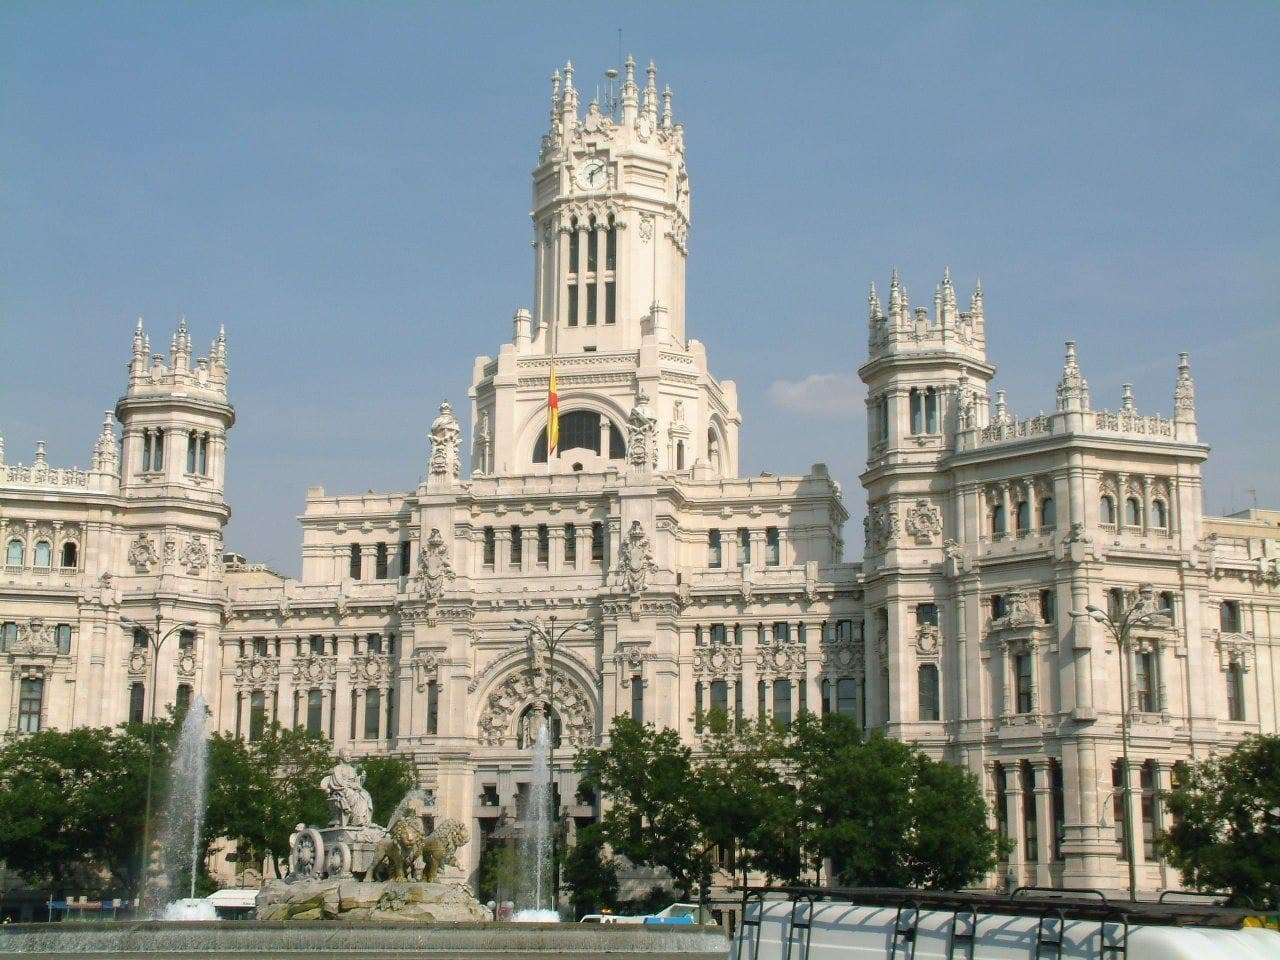 Sightsee in Madrid via the web